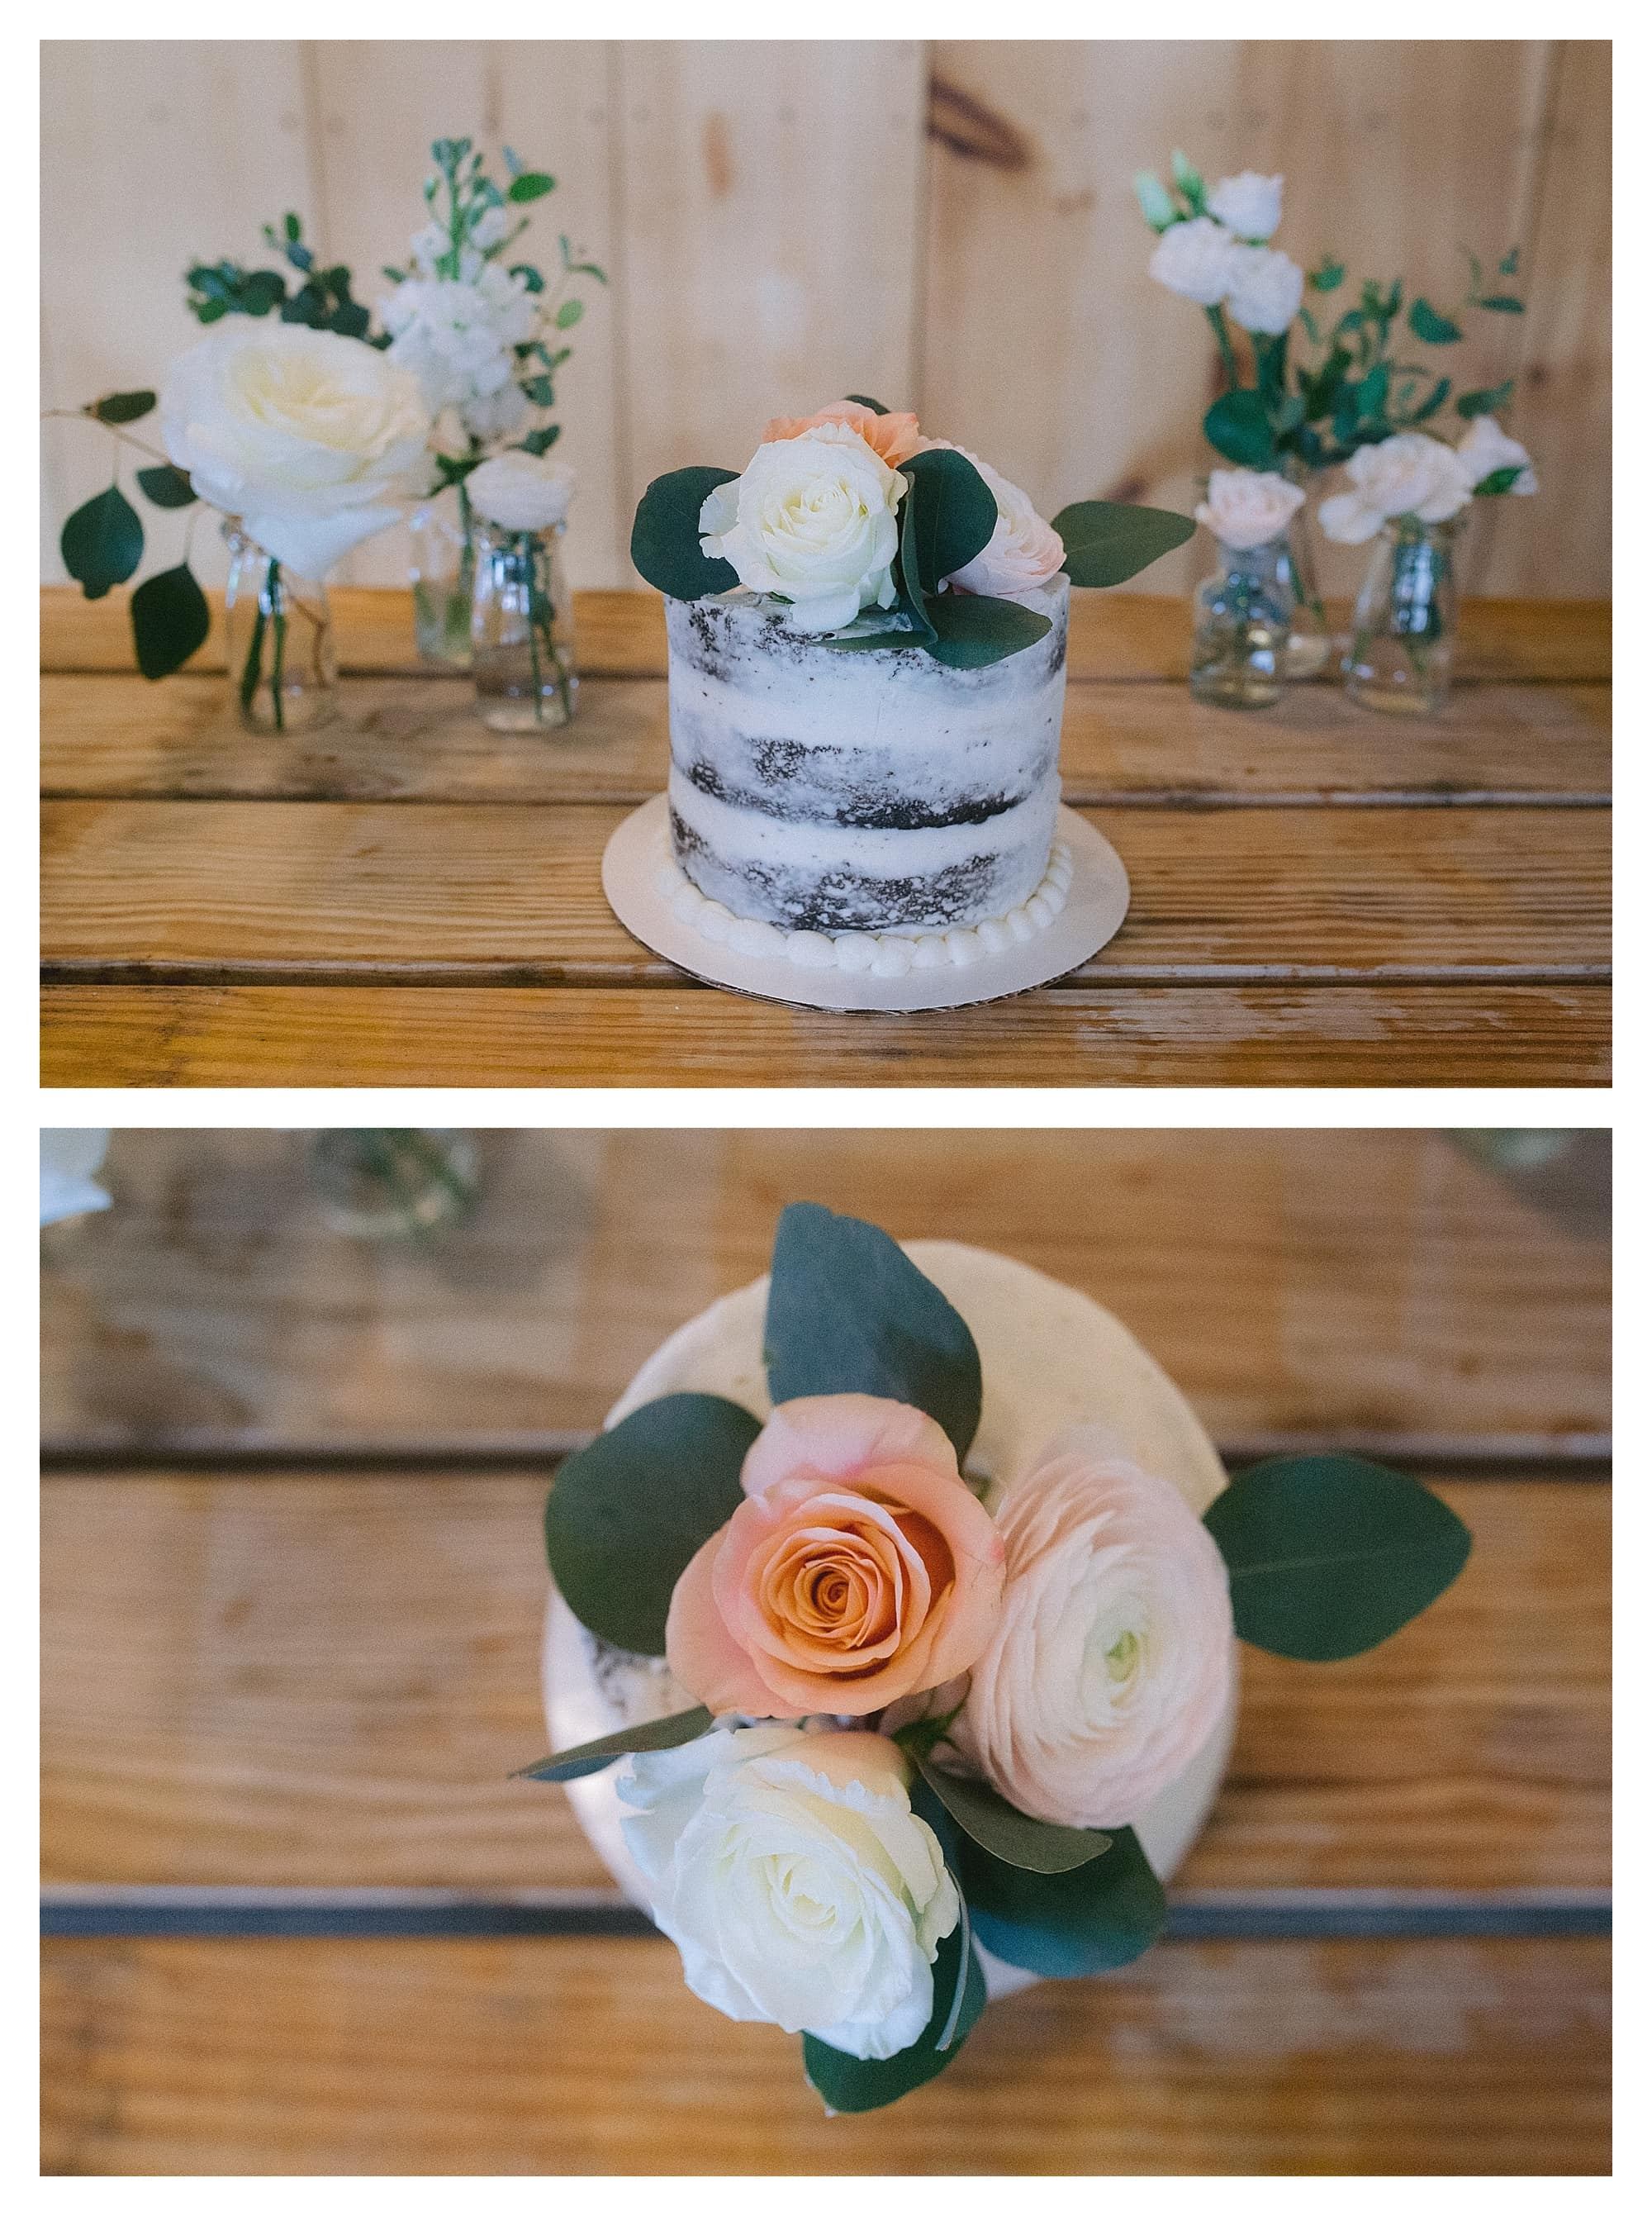 White wedding cake with peach and cream flowers on top